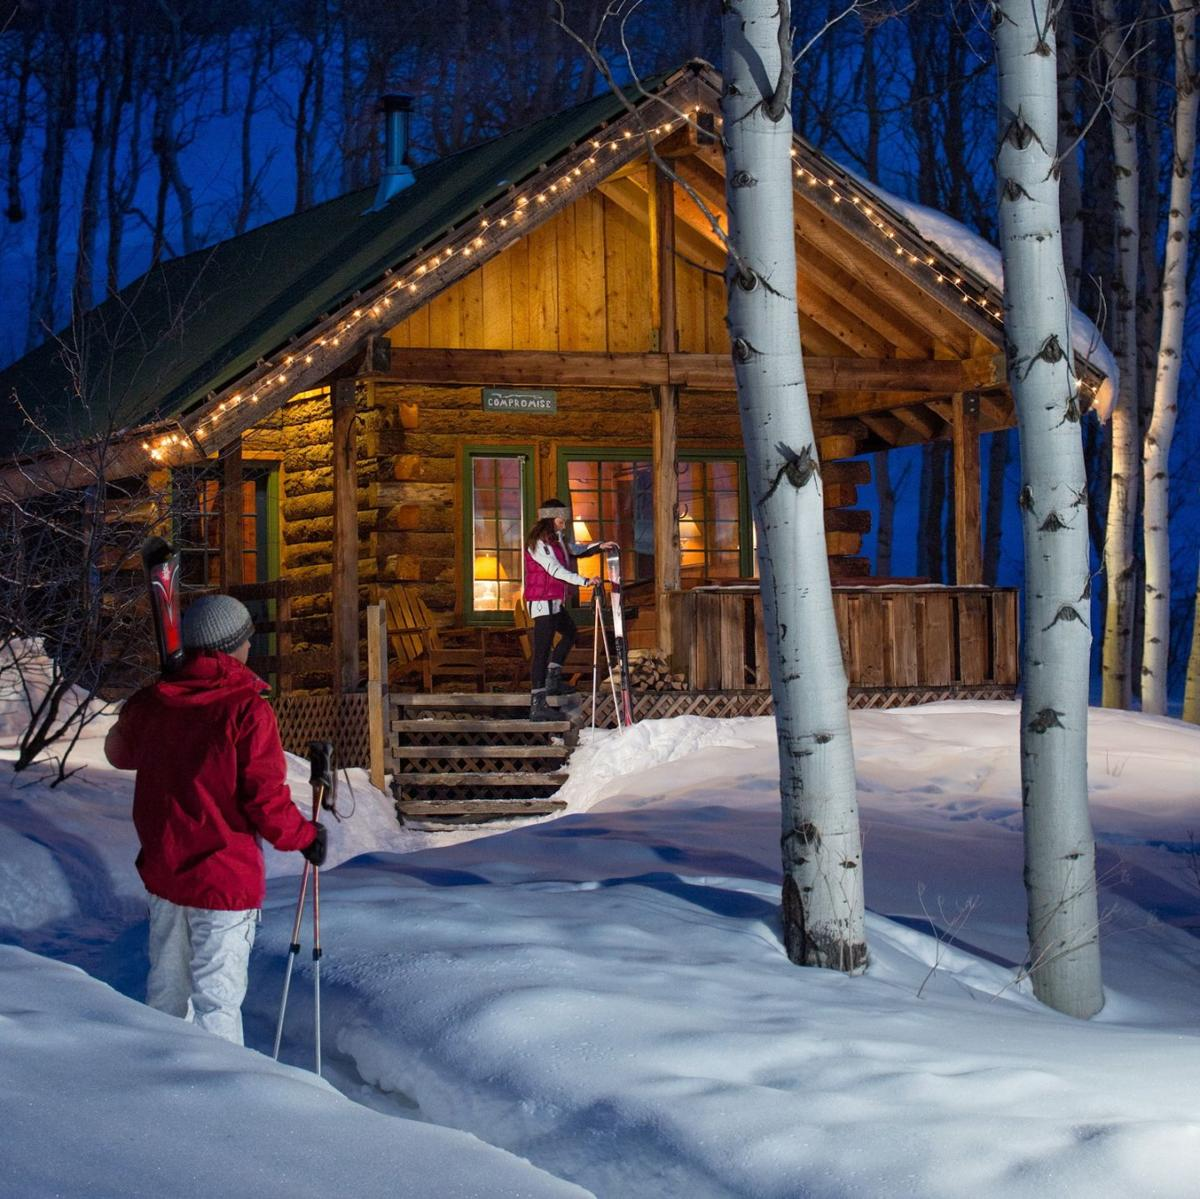 Cabins at the Home Ranch in Colorado are a festive home-away-from-home this holiday season.